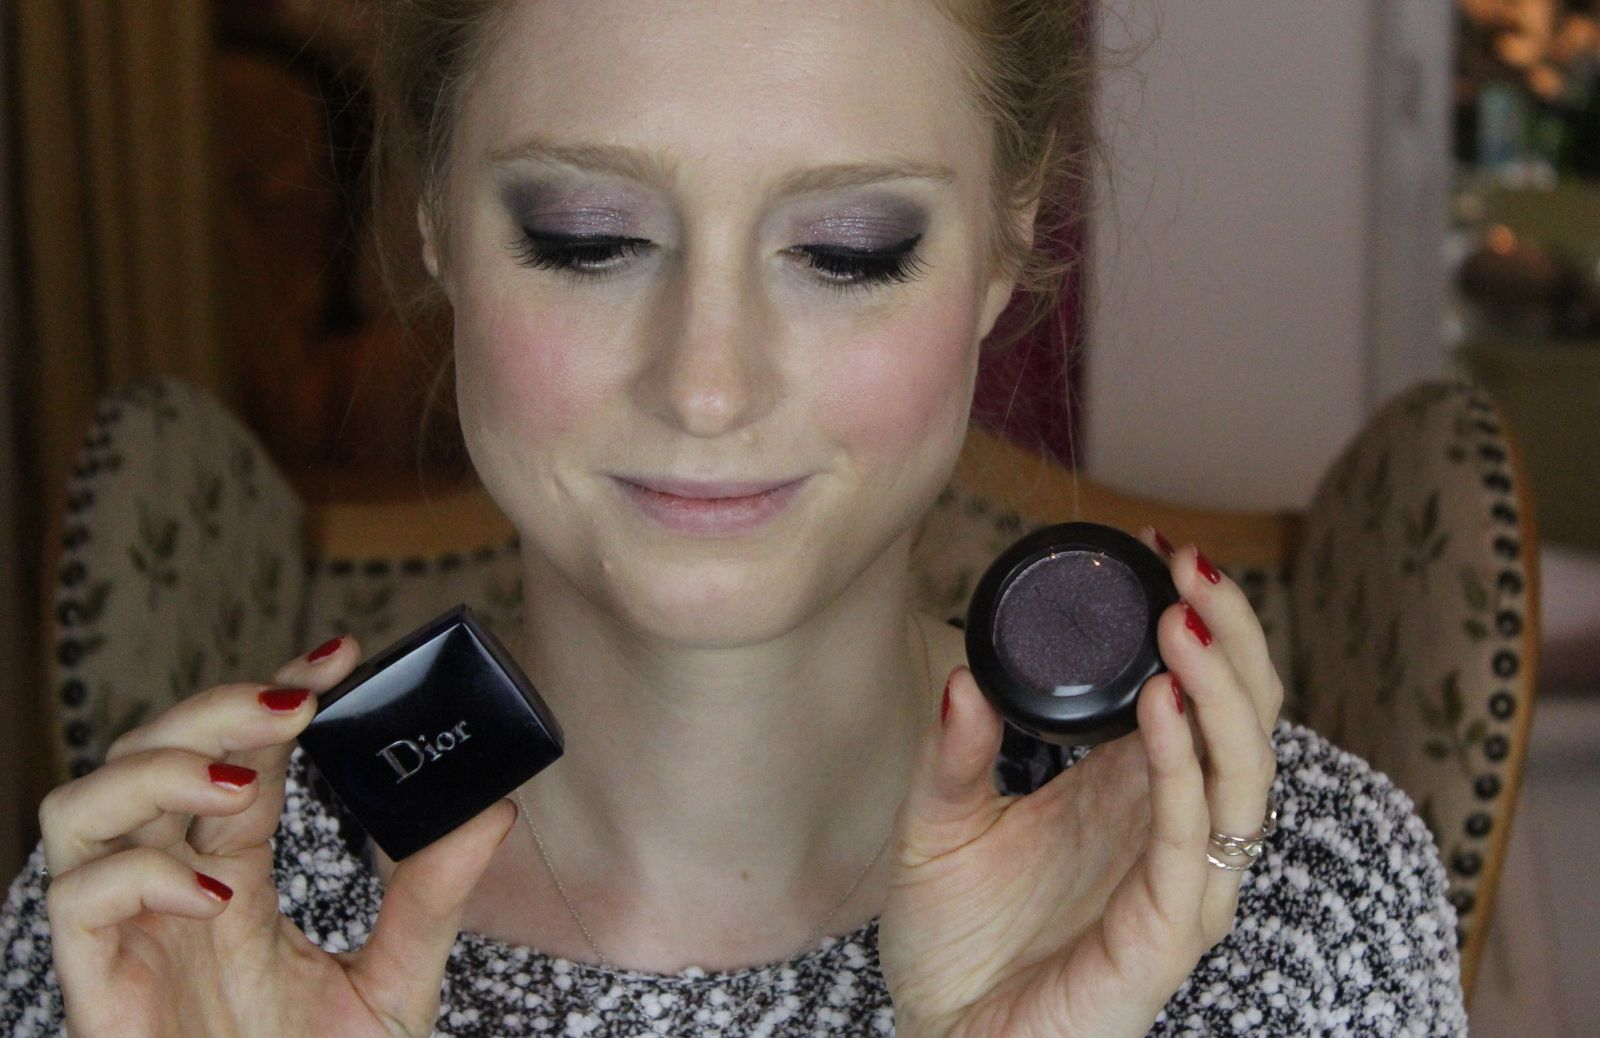 frist ever Makeup Look on http://www.advance-your-style.de using #MAC and #DIOR Eyeshadow